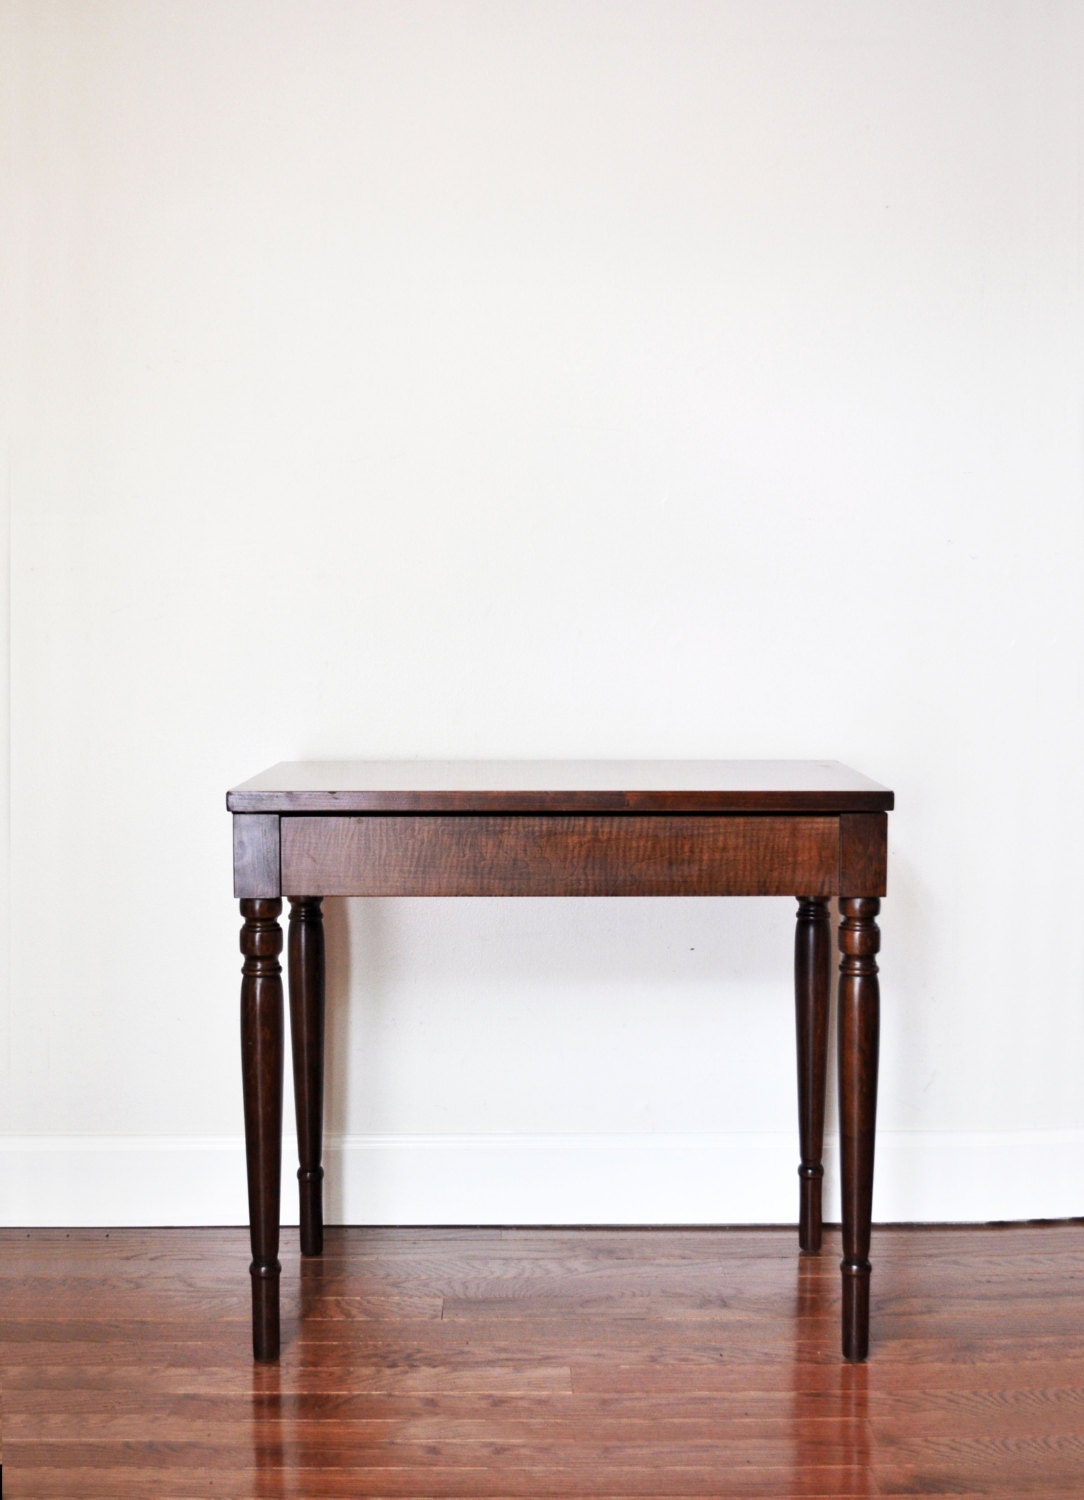 Vintage Piano Bench Side Table With Storage